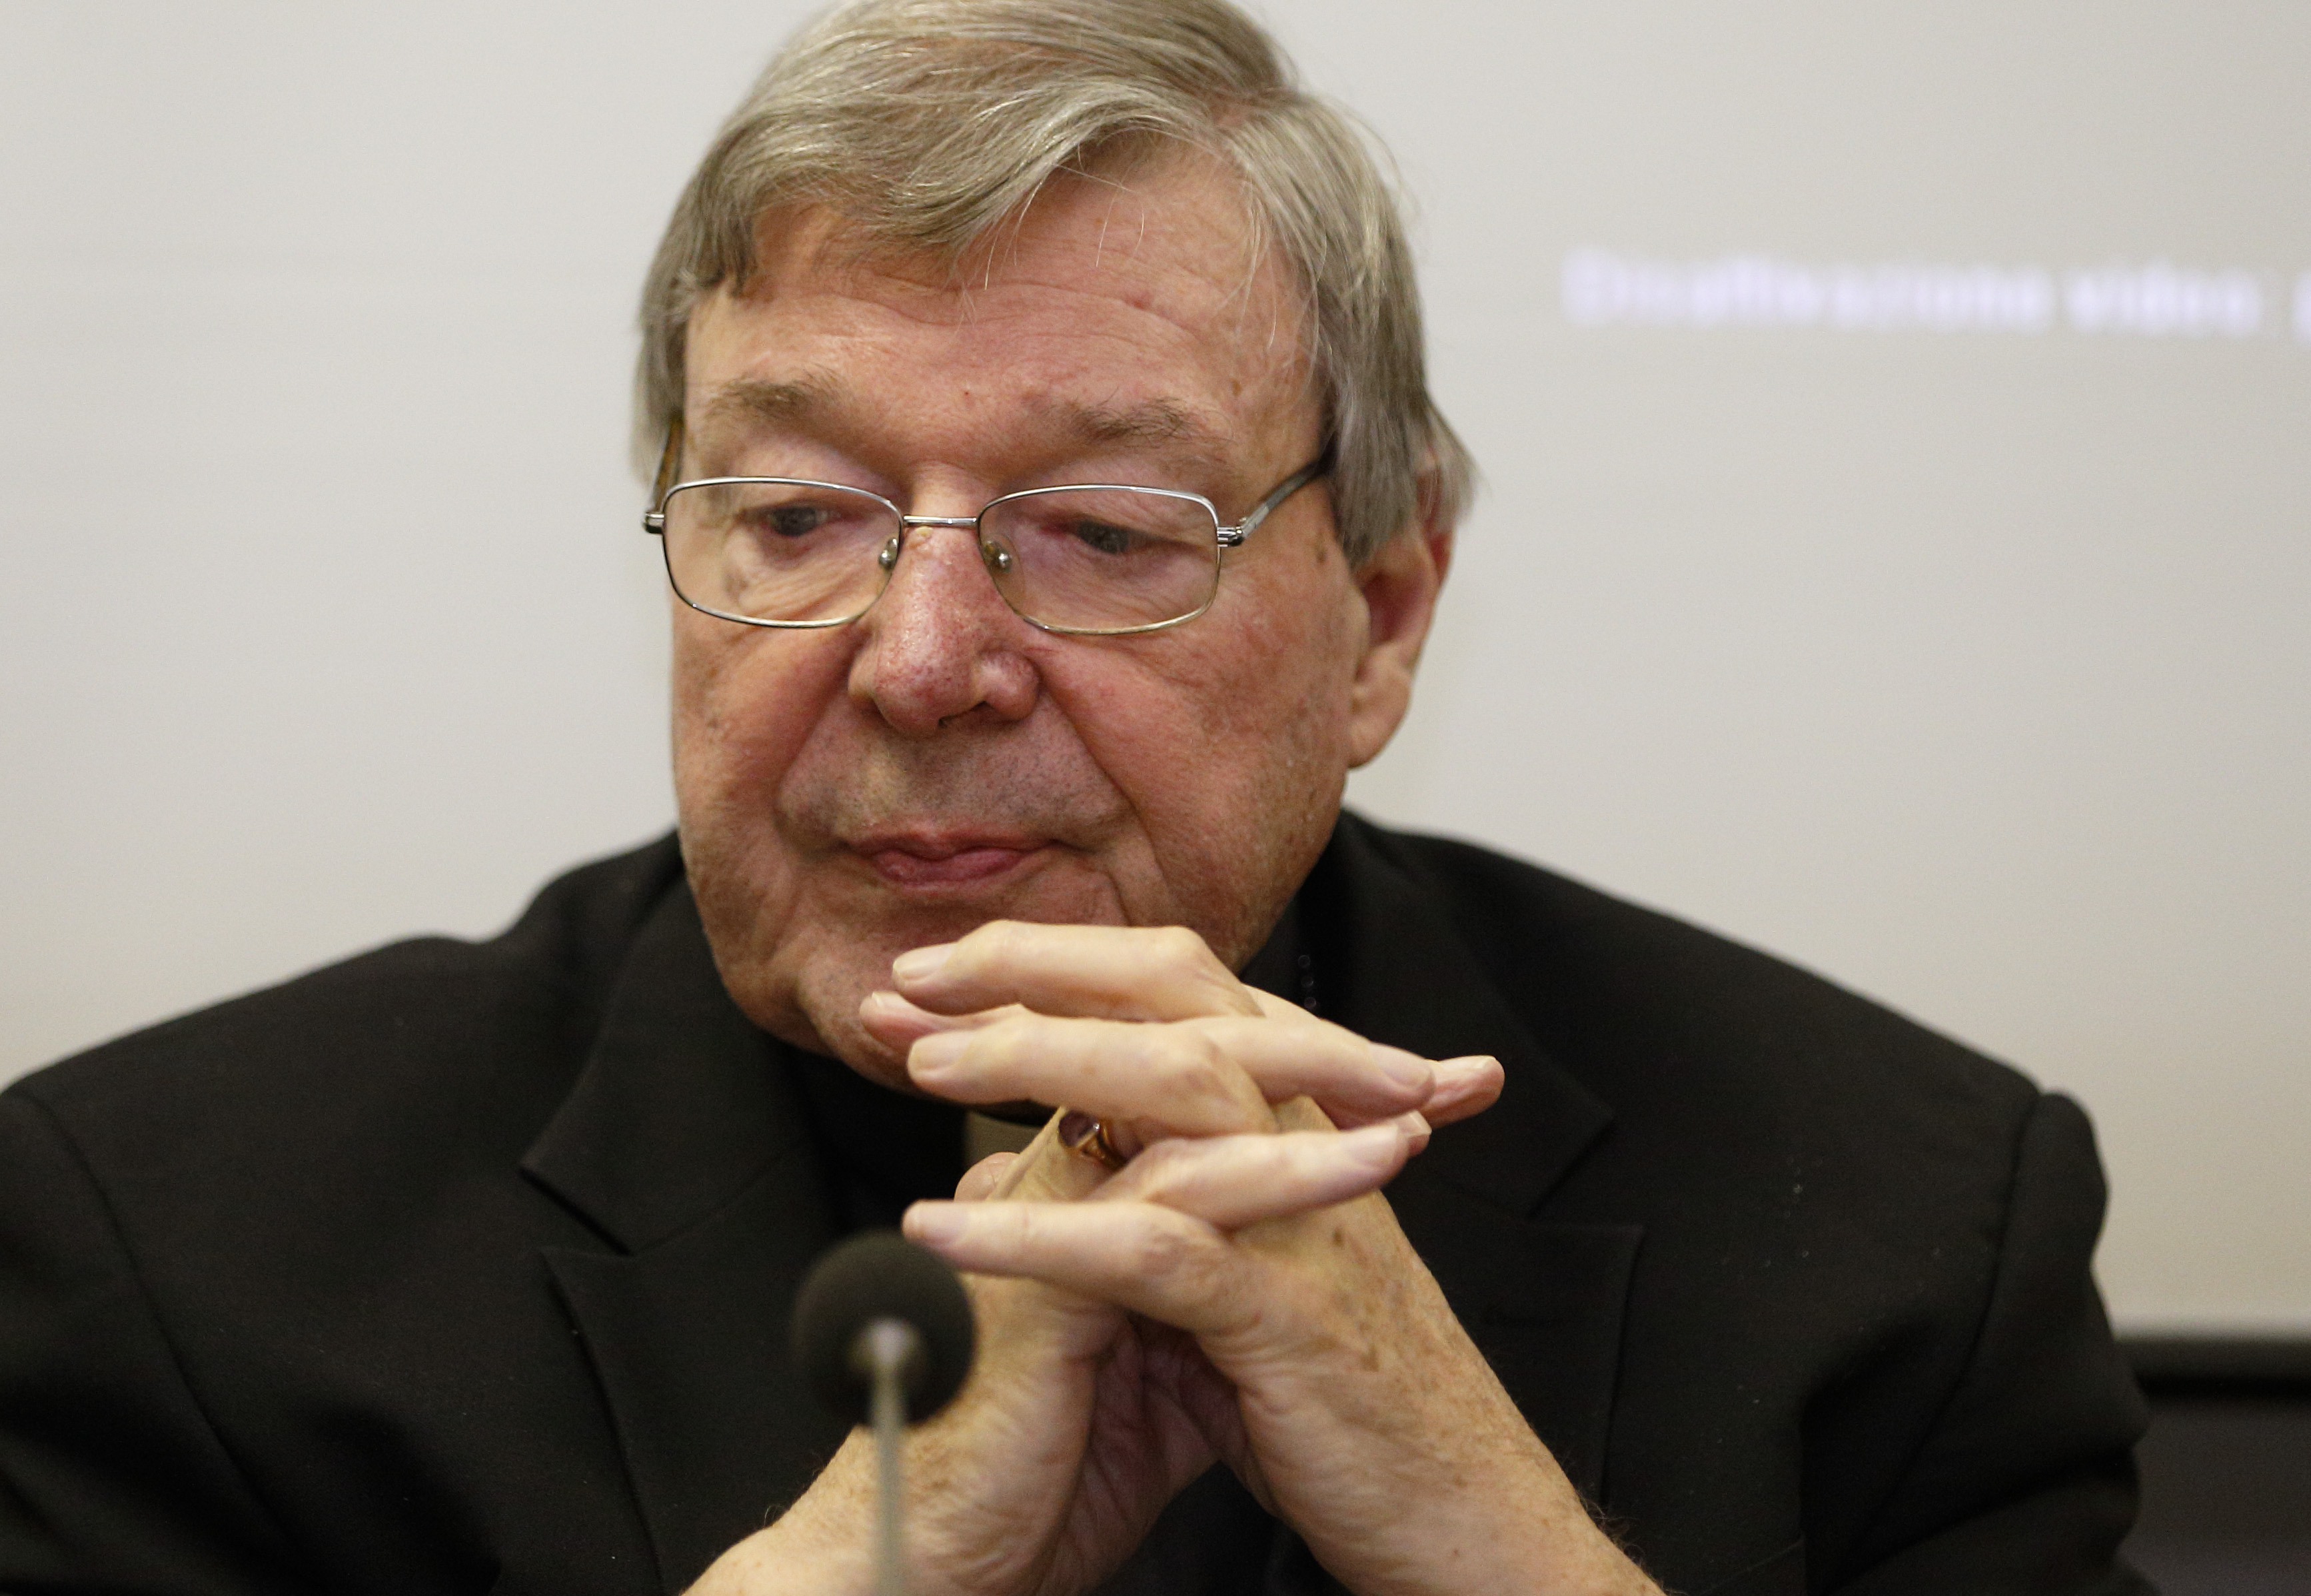 quarterly essay george pell This is an edited extract from quarterly essay 51, the prince: faith, abuse and george pell by david marr, out today david marr is a multi-award-winning author and journalist.